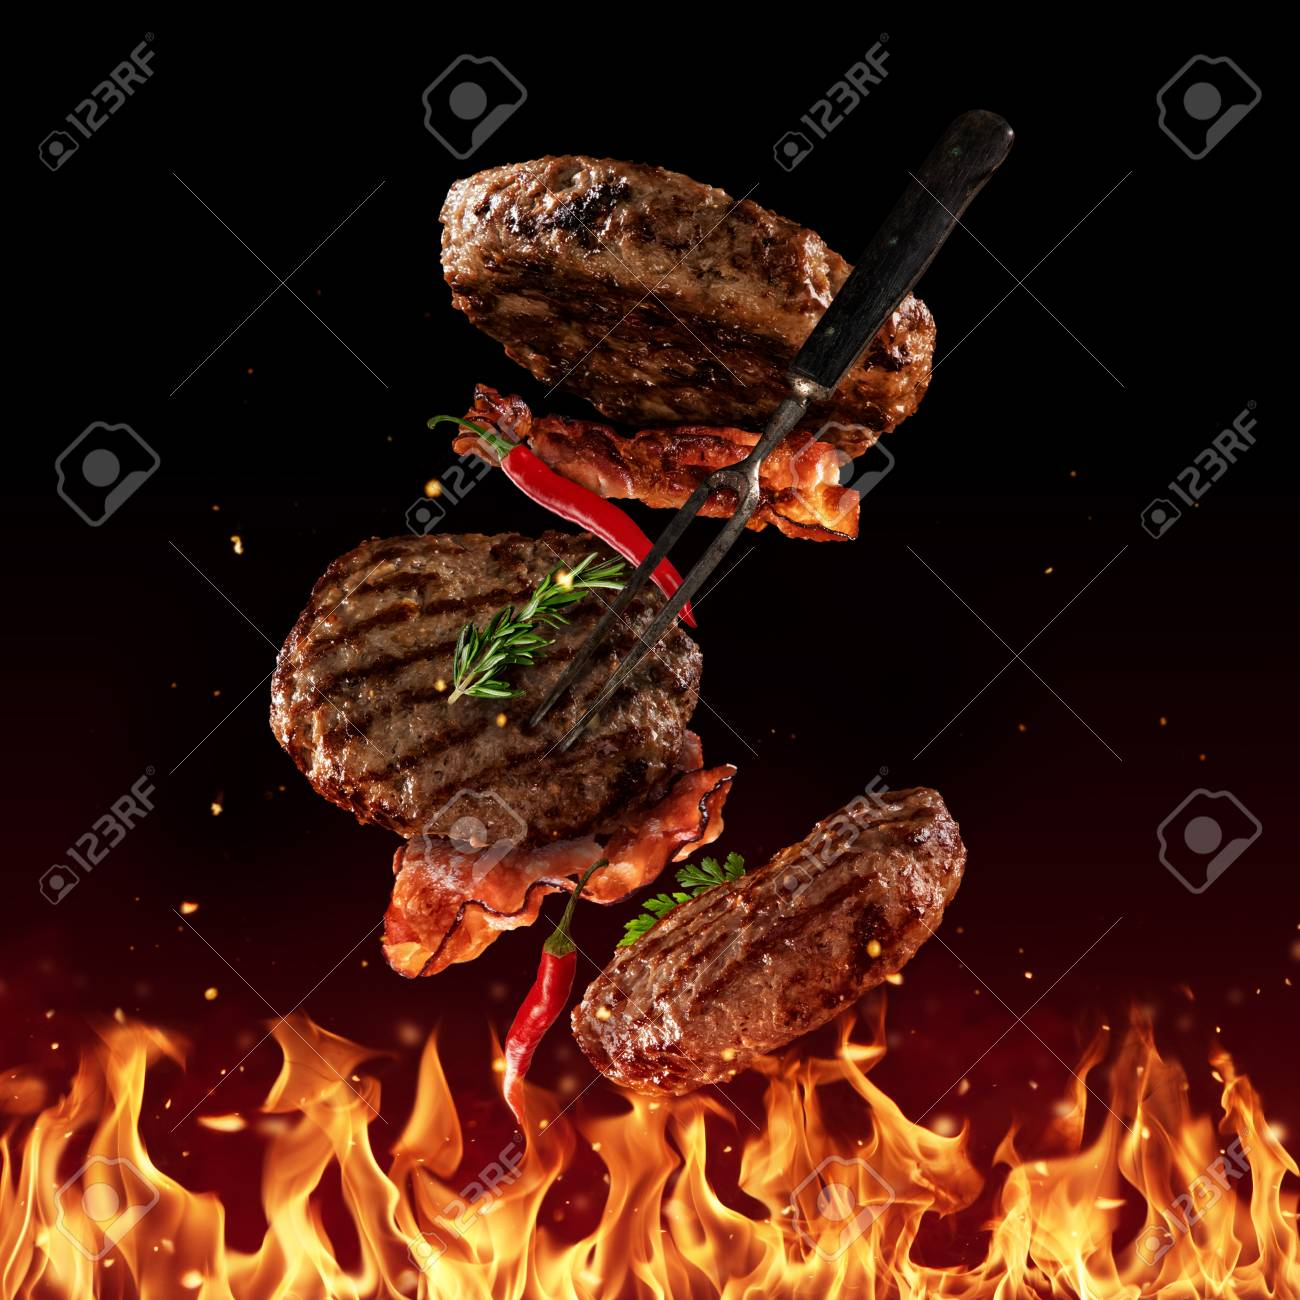 Flying beef minced hamburger pieces above grill flames, isolated on black background. Concept of flying food, very high resolution image - 101648294